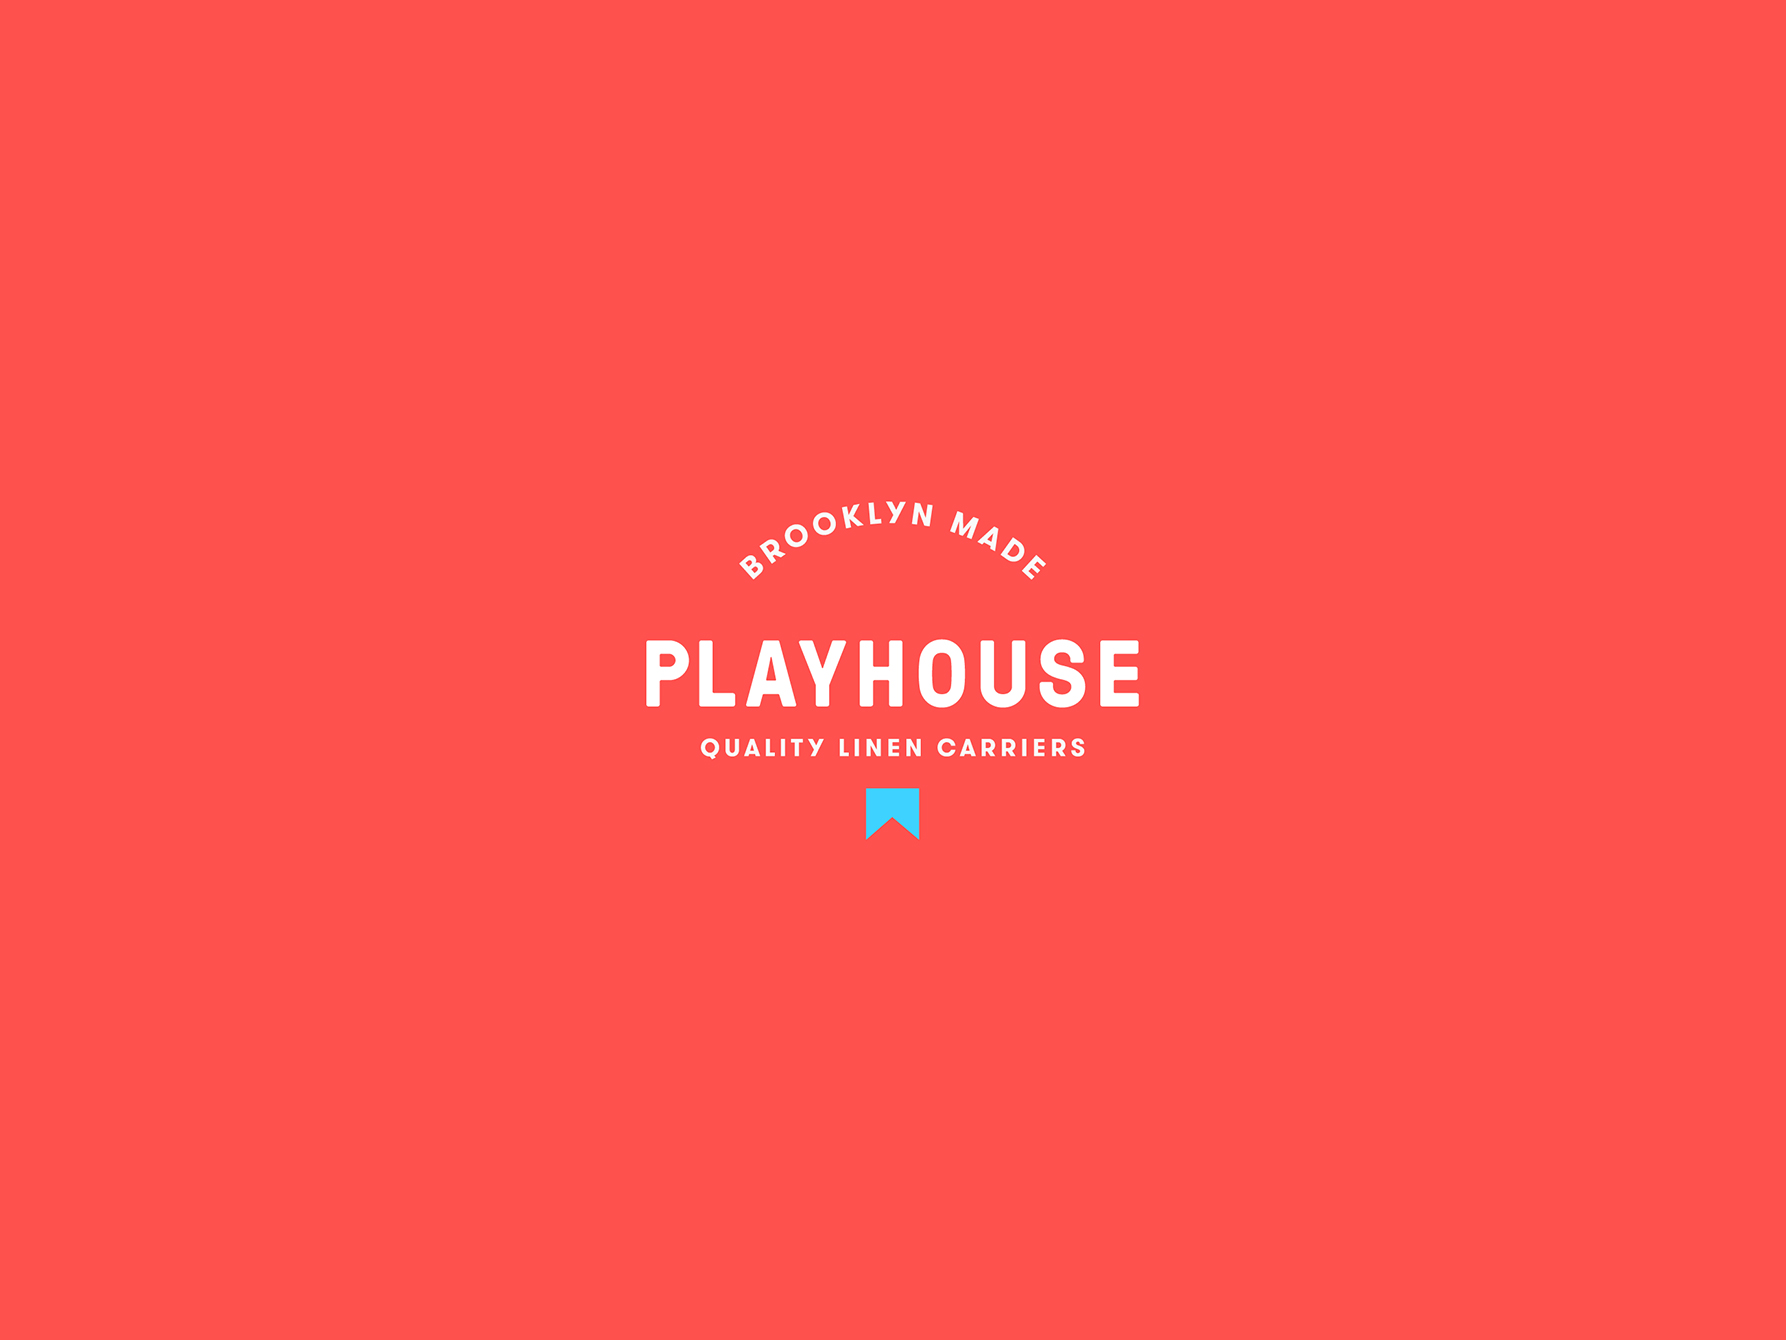 Playhouse.jpg